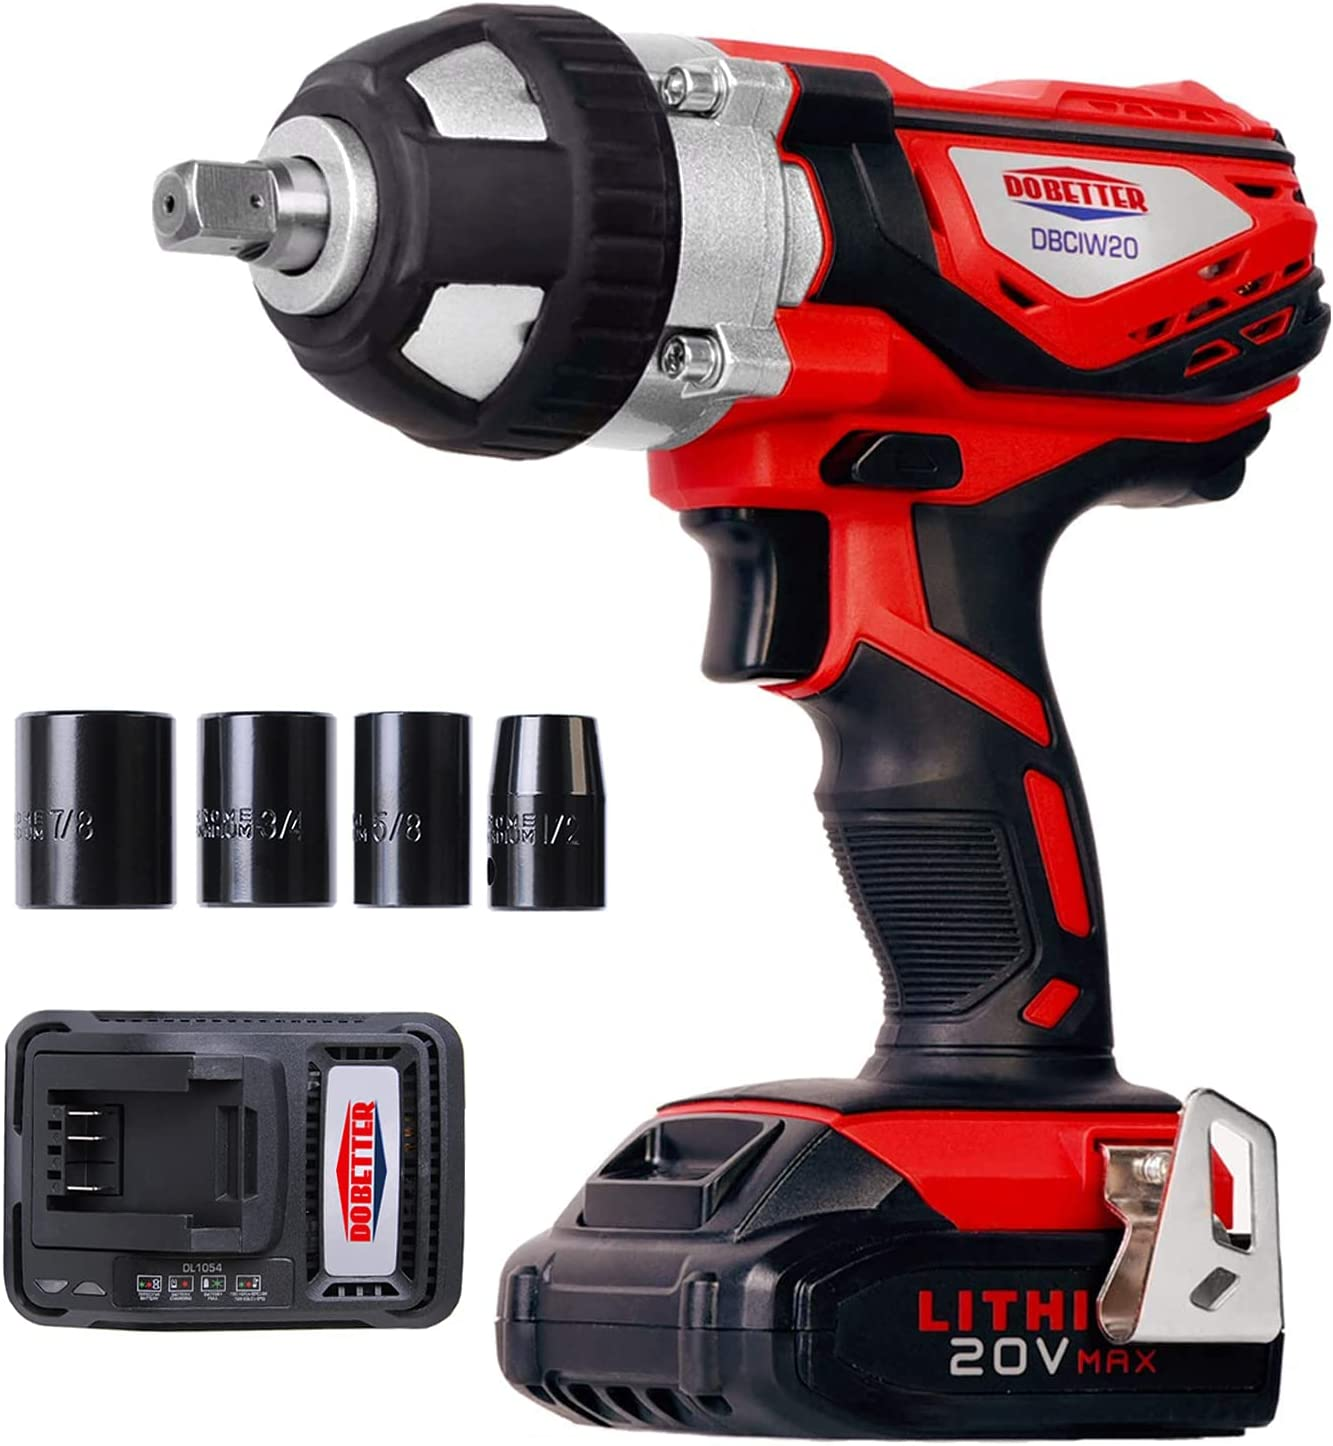 Dobetter DBCIW20 Impact Wrench To Change Tires